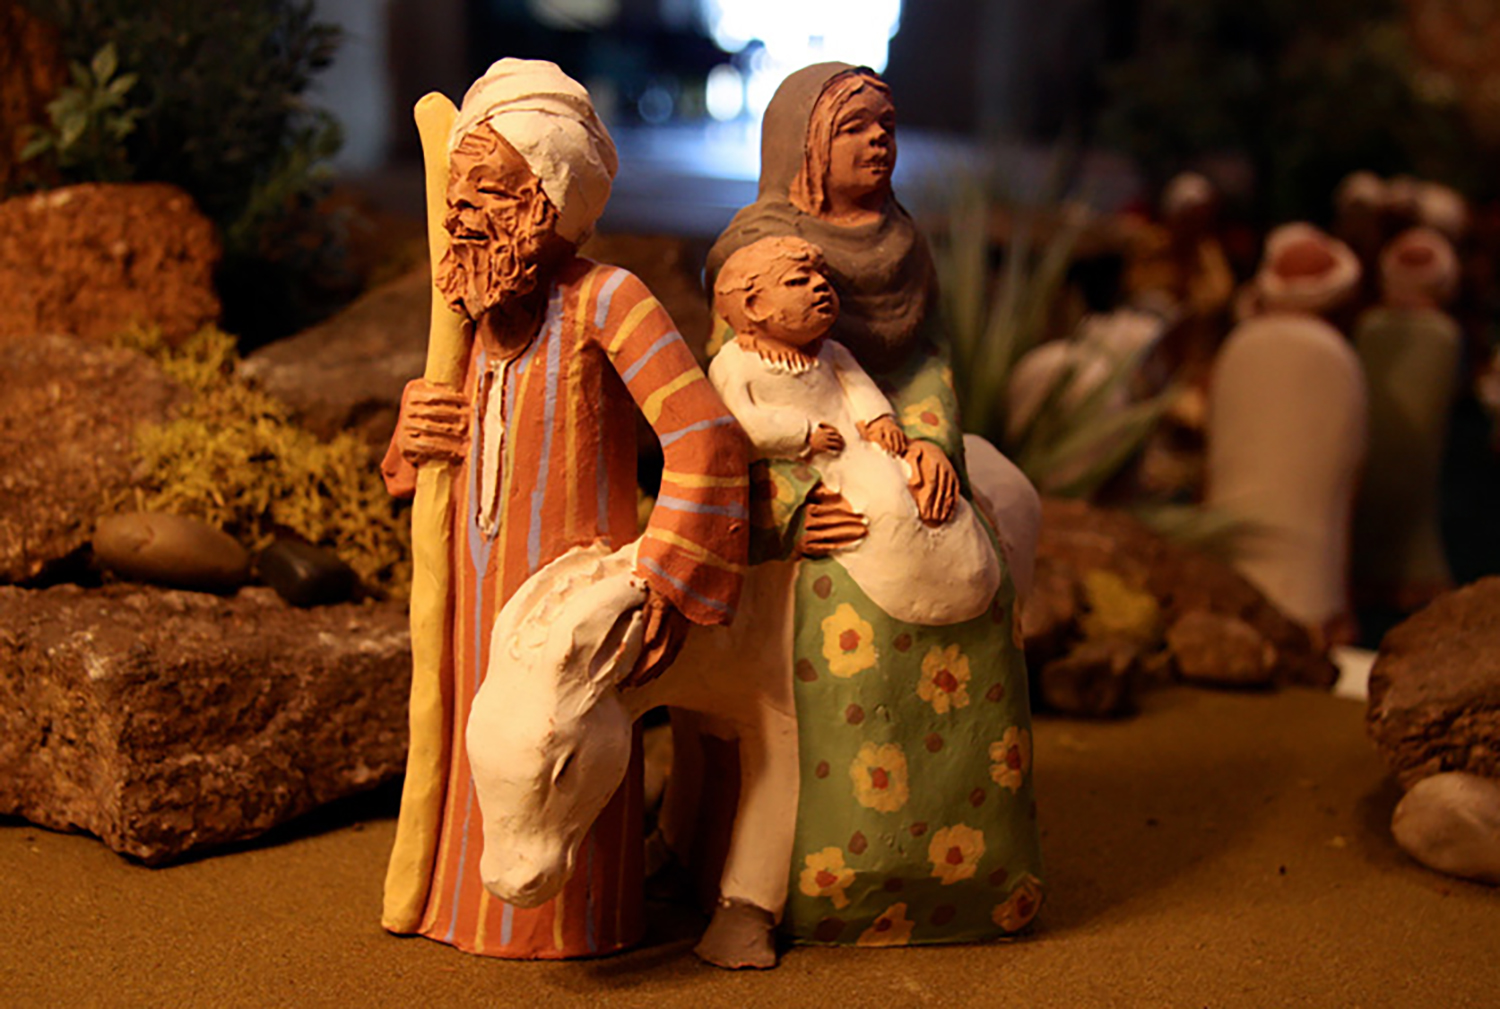 This terracotta figurine of the Flight into Egypt was made in a ceramic workshop in Cairo, along with a 12-piece Nativity set. The clothing styles are typical of rural Upper Egypt. The complete set, commissioned in 2010 by St. Mark's Coptic Museum in Toronto, Canada, can be seen in Glencairn's exhibition,  Follow the Star: World Nativities .